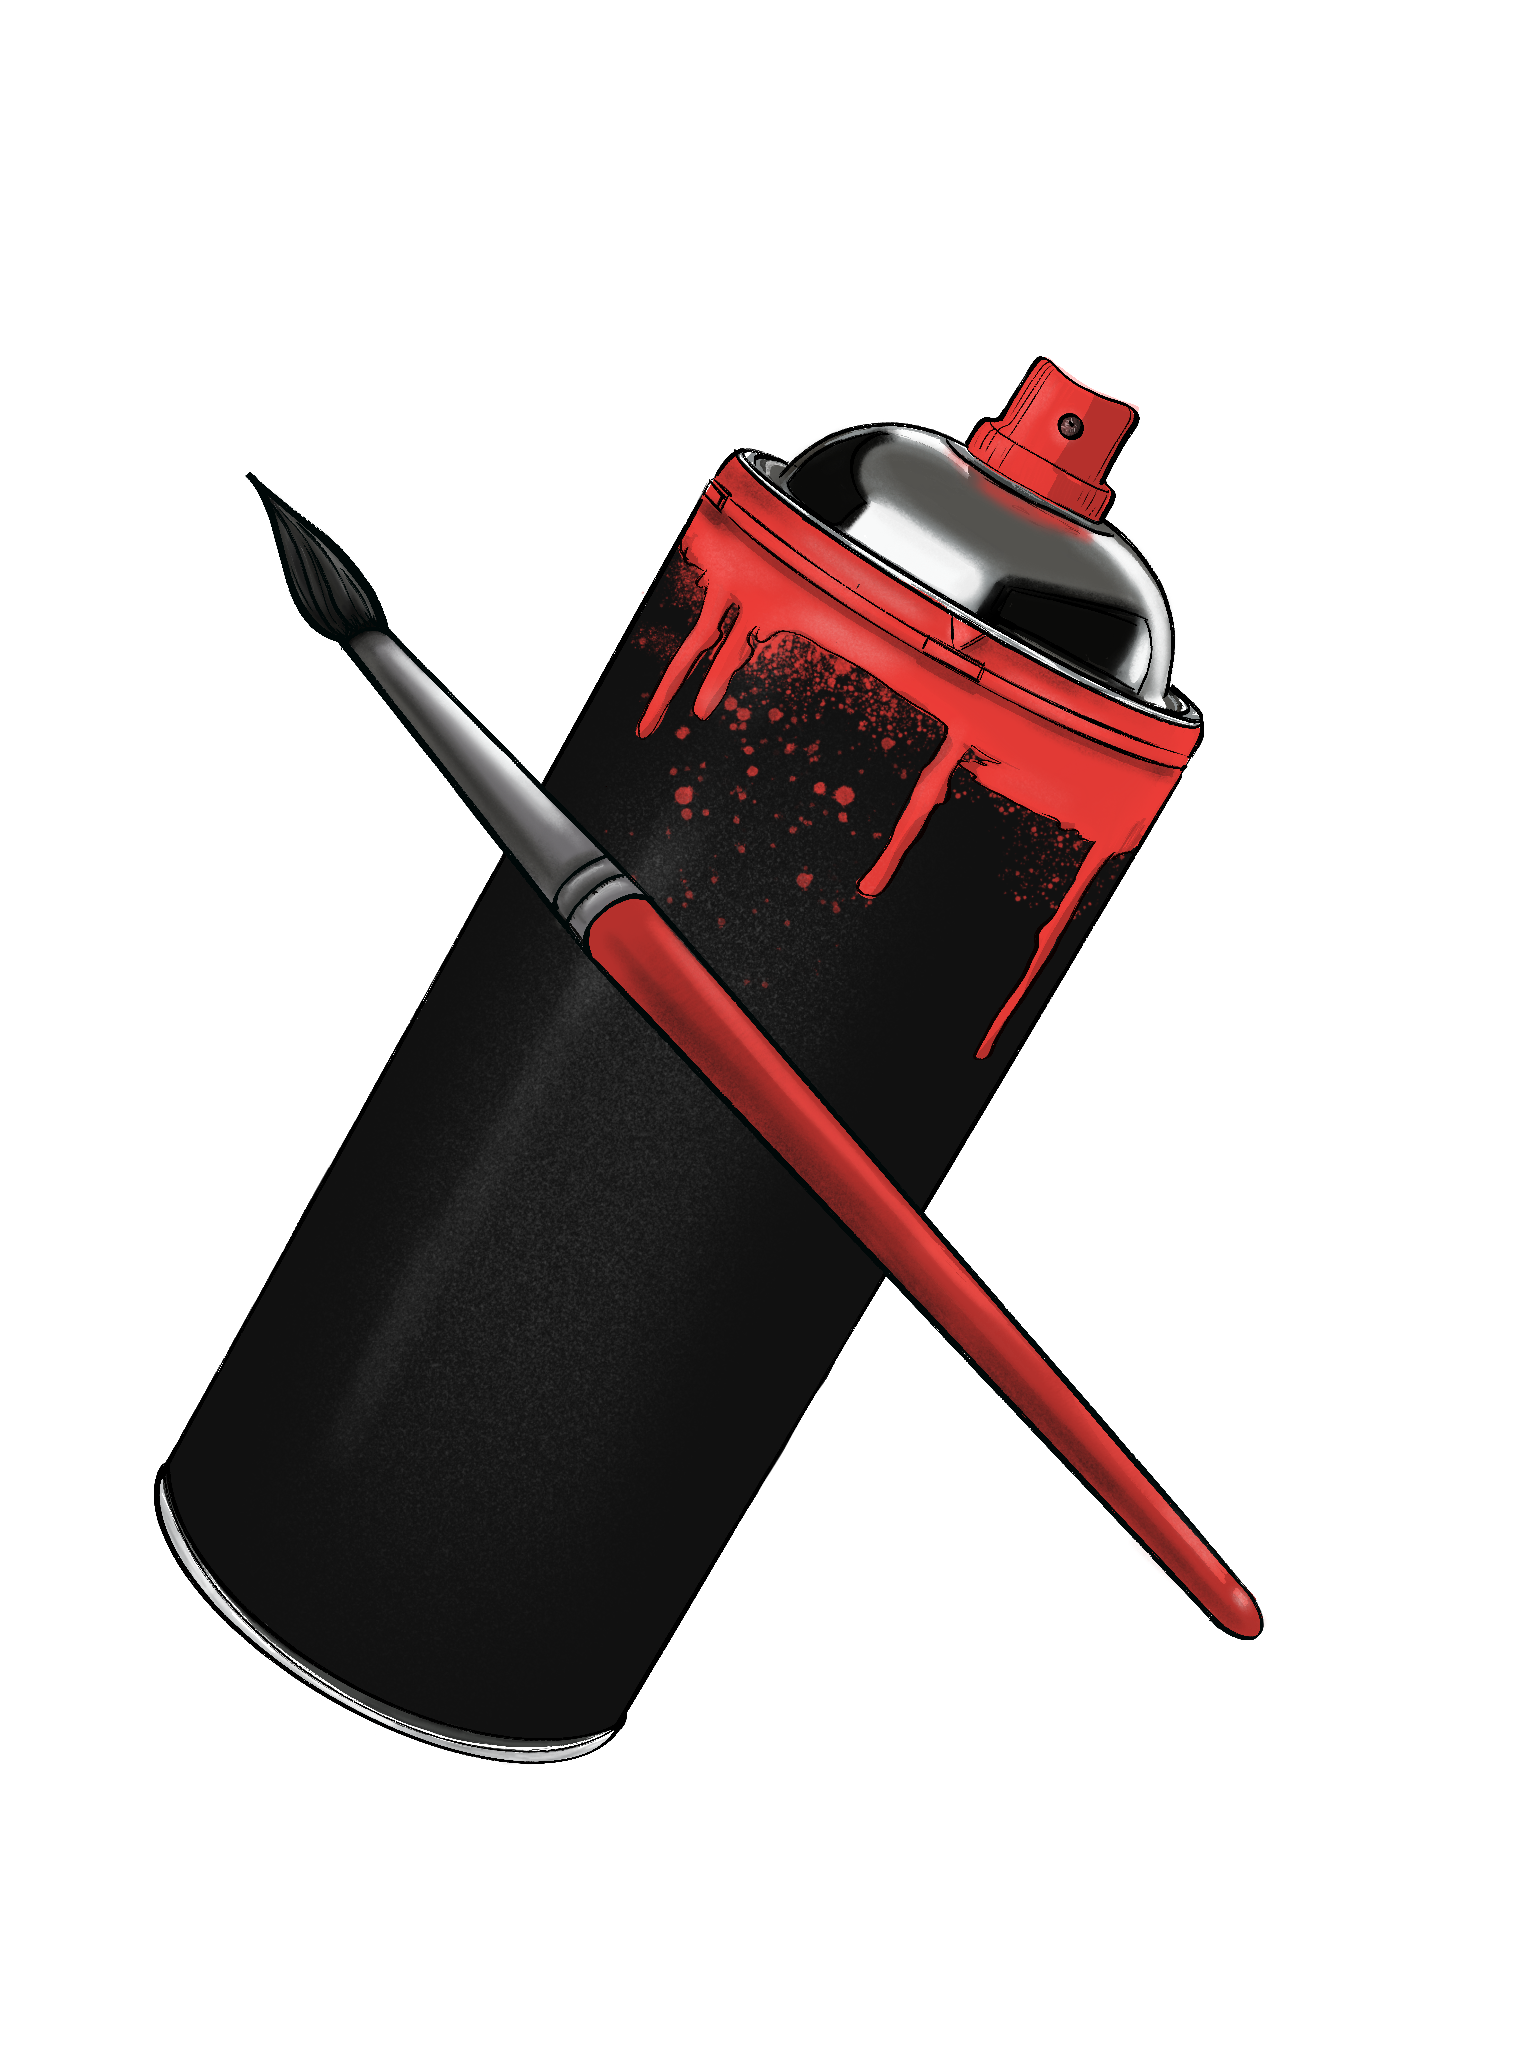 Illustrated spray paint can with a paint brush